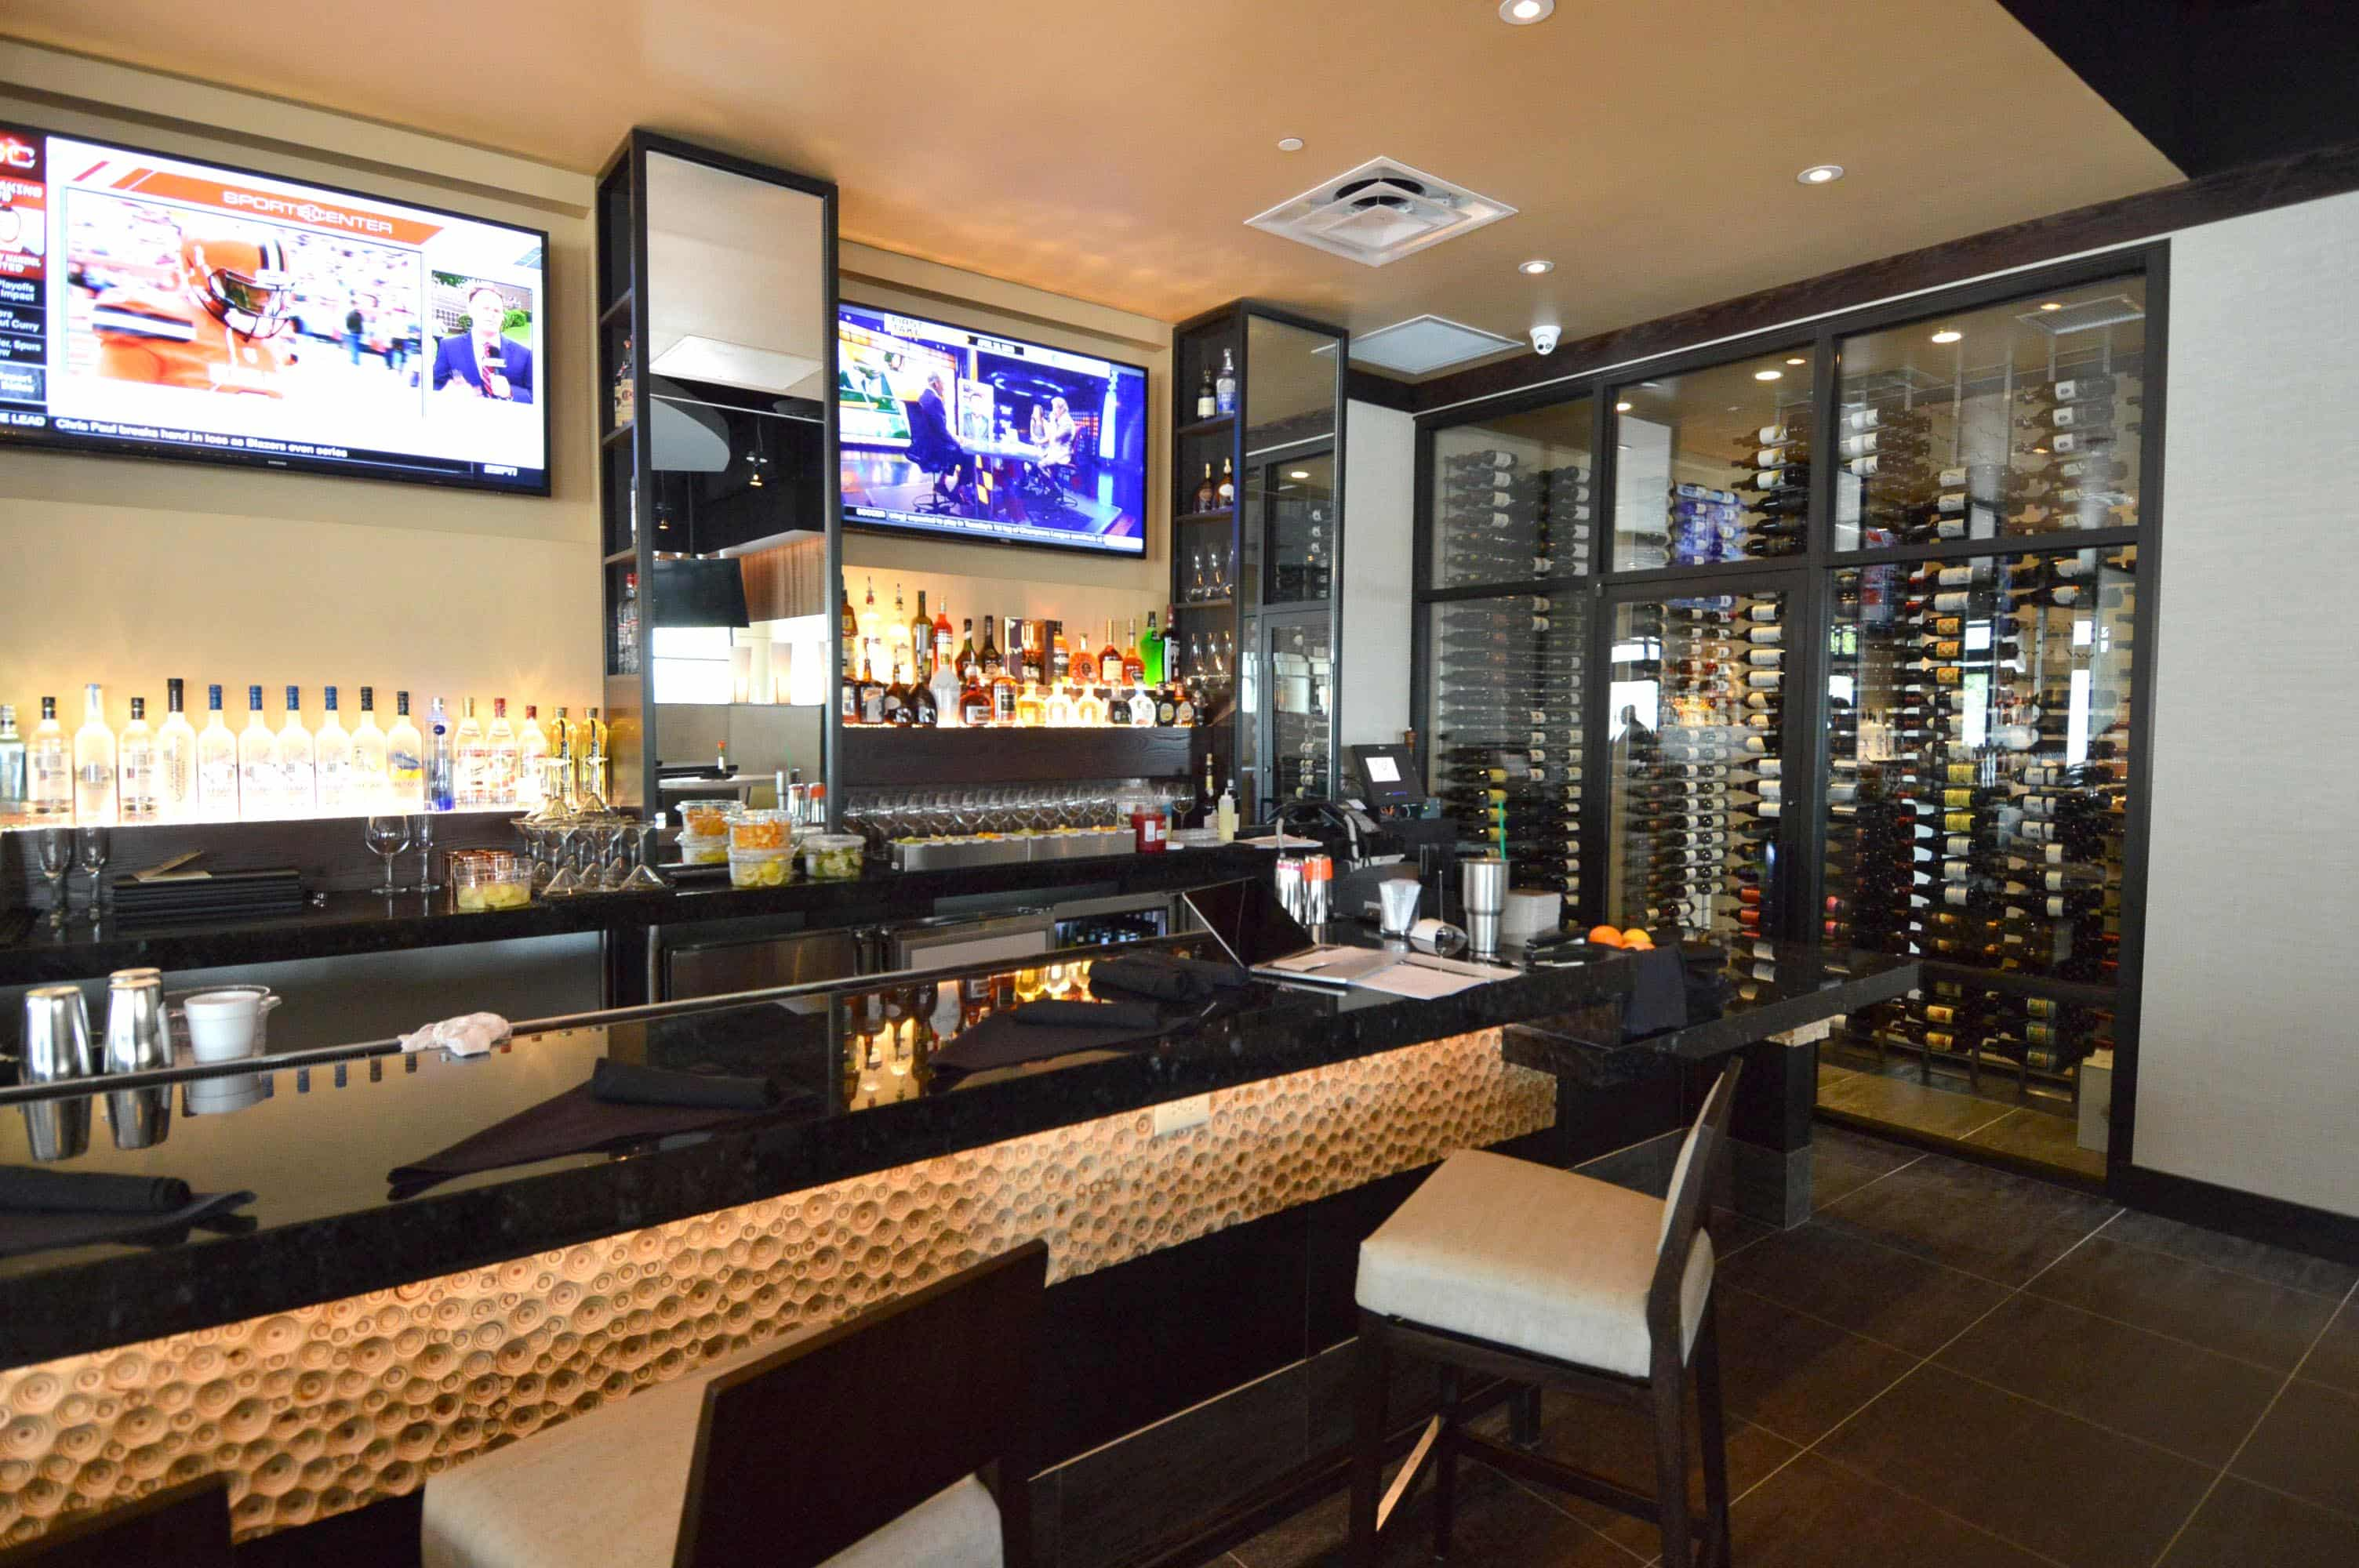 A Custom Commercial Wine Cellar Puts the Fine in Fine Wine and Dining at Jasper's Restaurant at Cityline in Richardson Texas